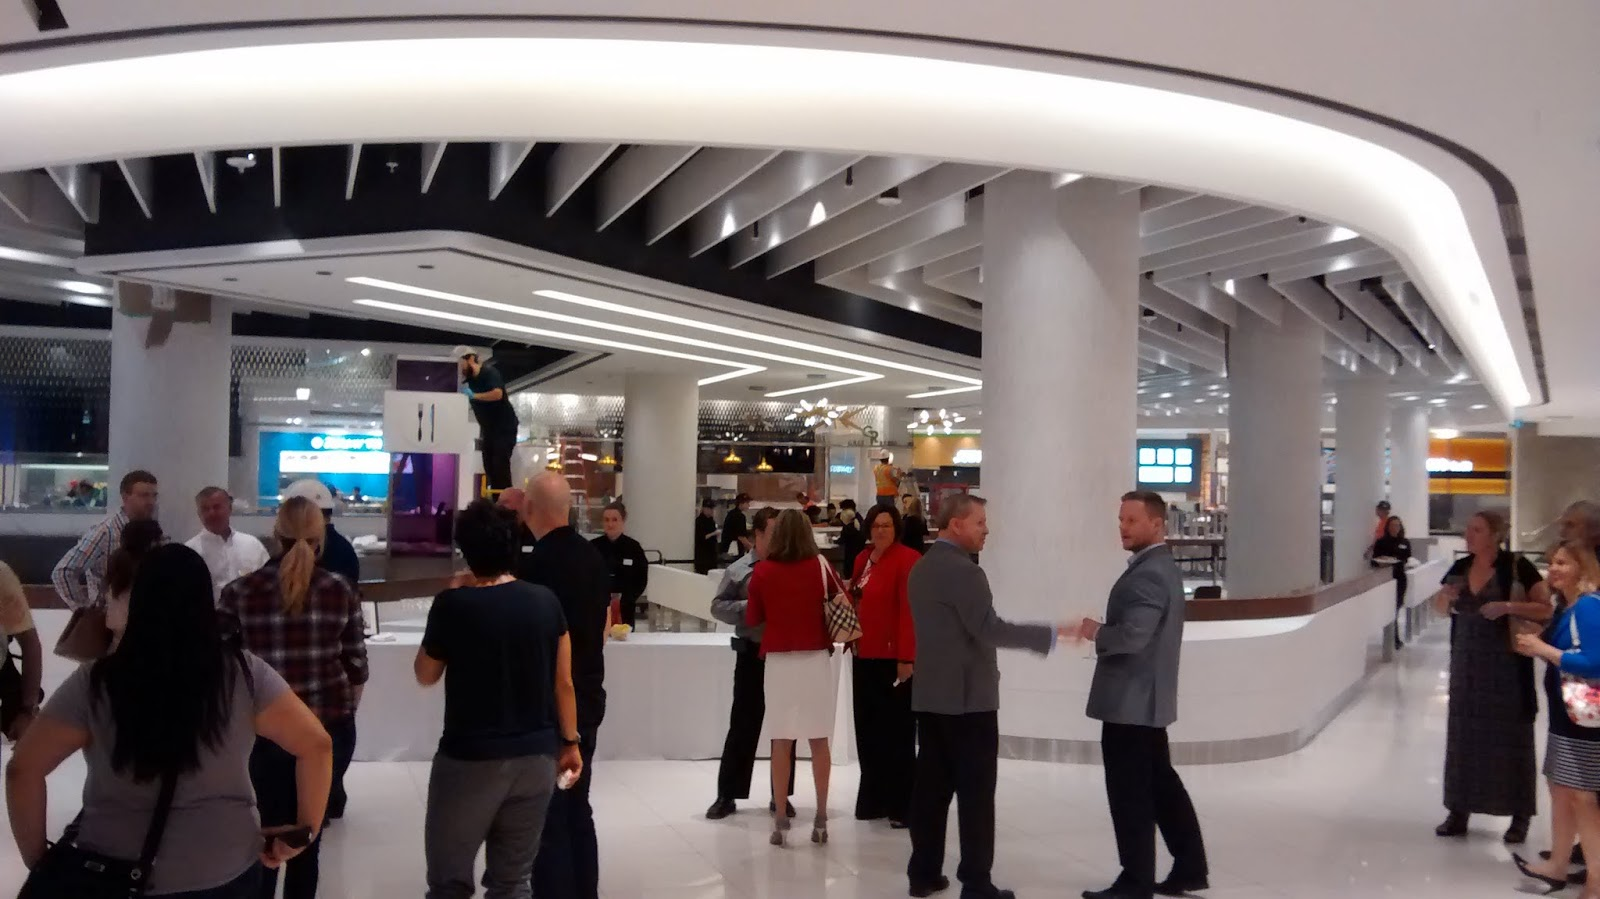 Michael Suddard: New Rideau Centre Food Court: A Review